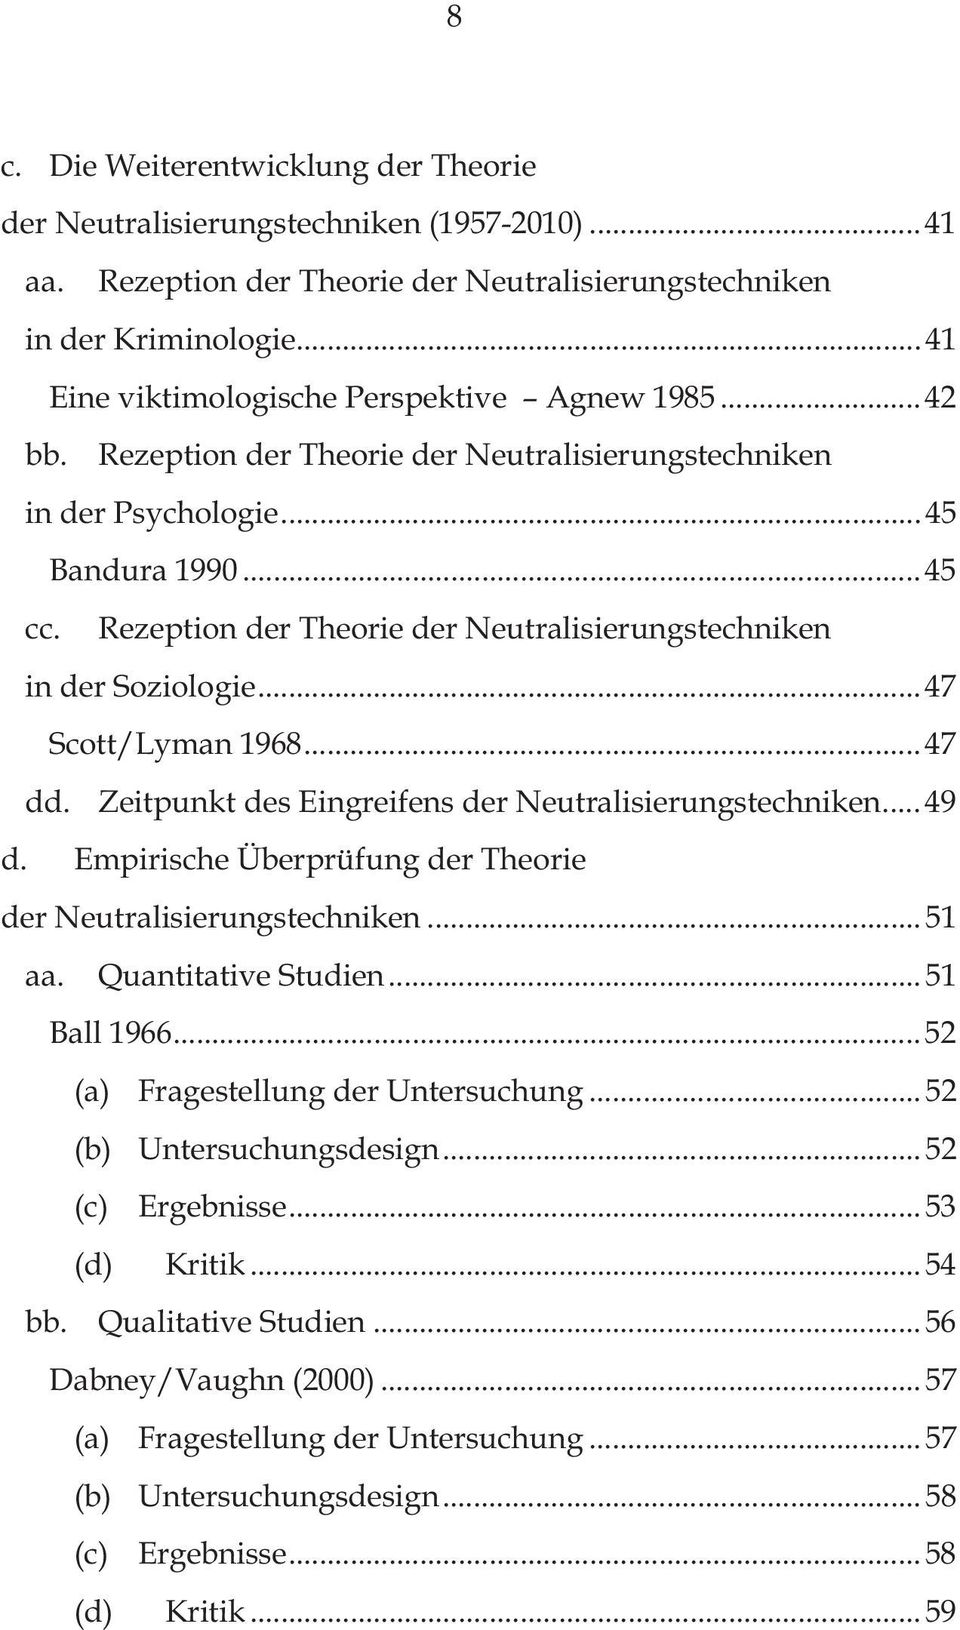 Rezeption der Theorie der Neutralisierungstechniken in der Soziologie... 47 Scott/Lyman 1968... 47 dd. Zeitpunkt des Eingreifens der Neutralisierungstechniken... 49 d.